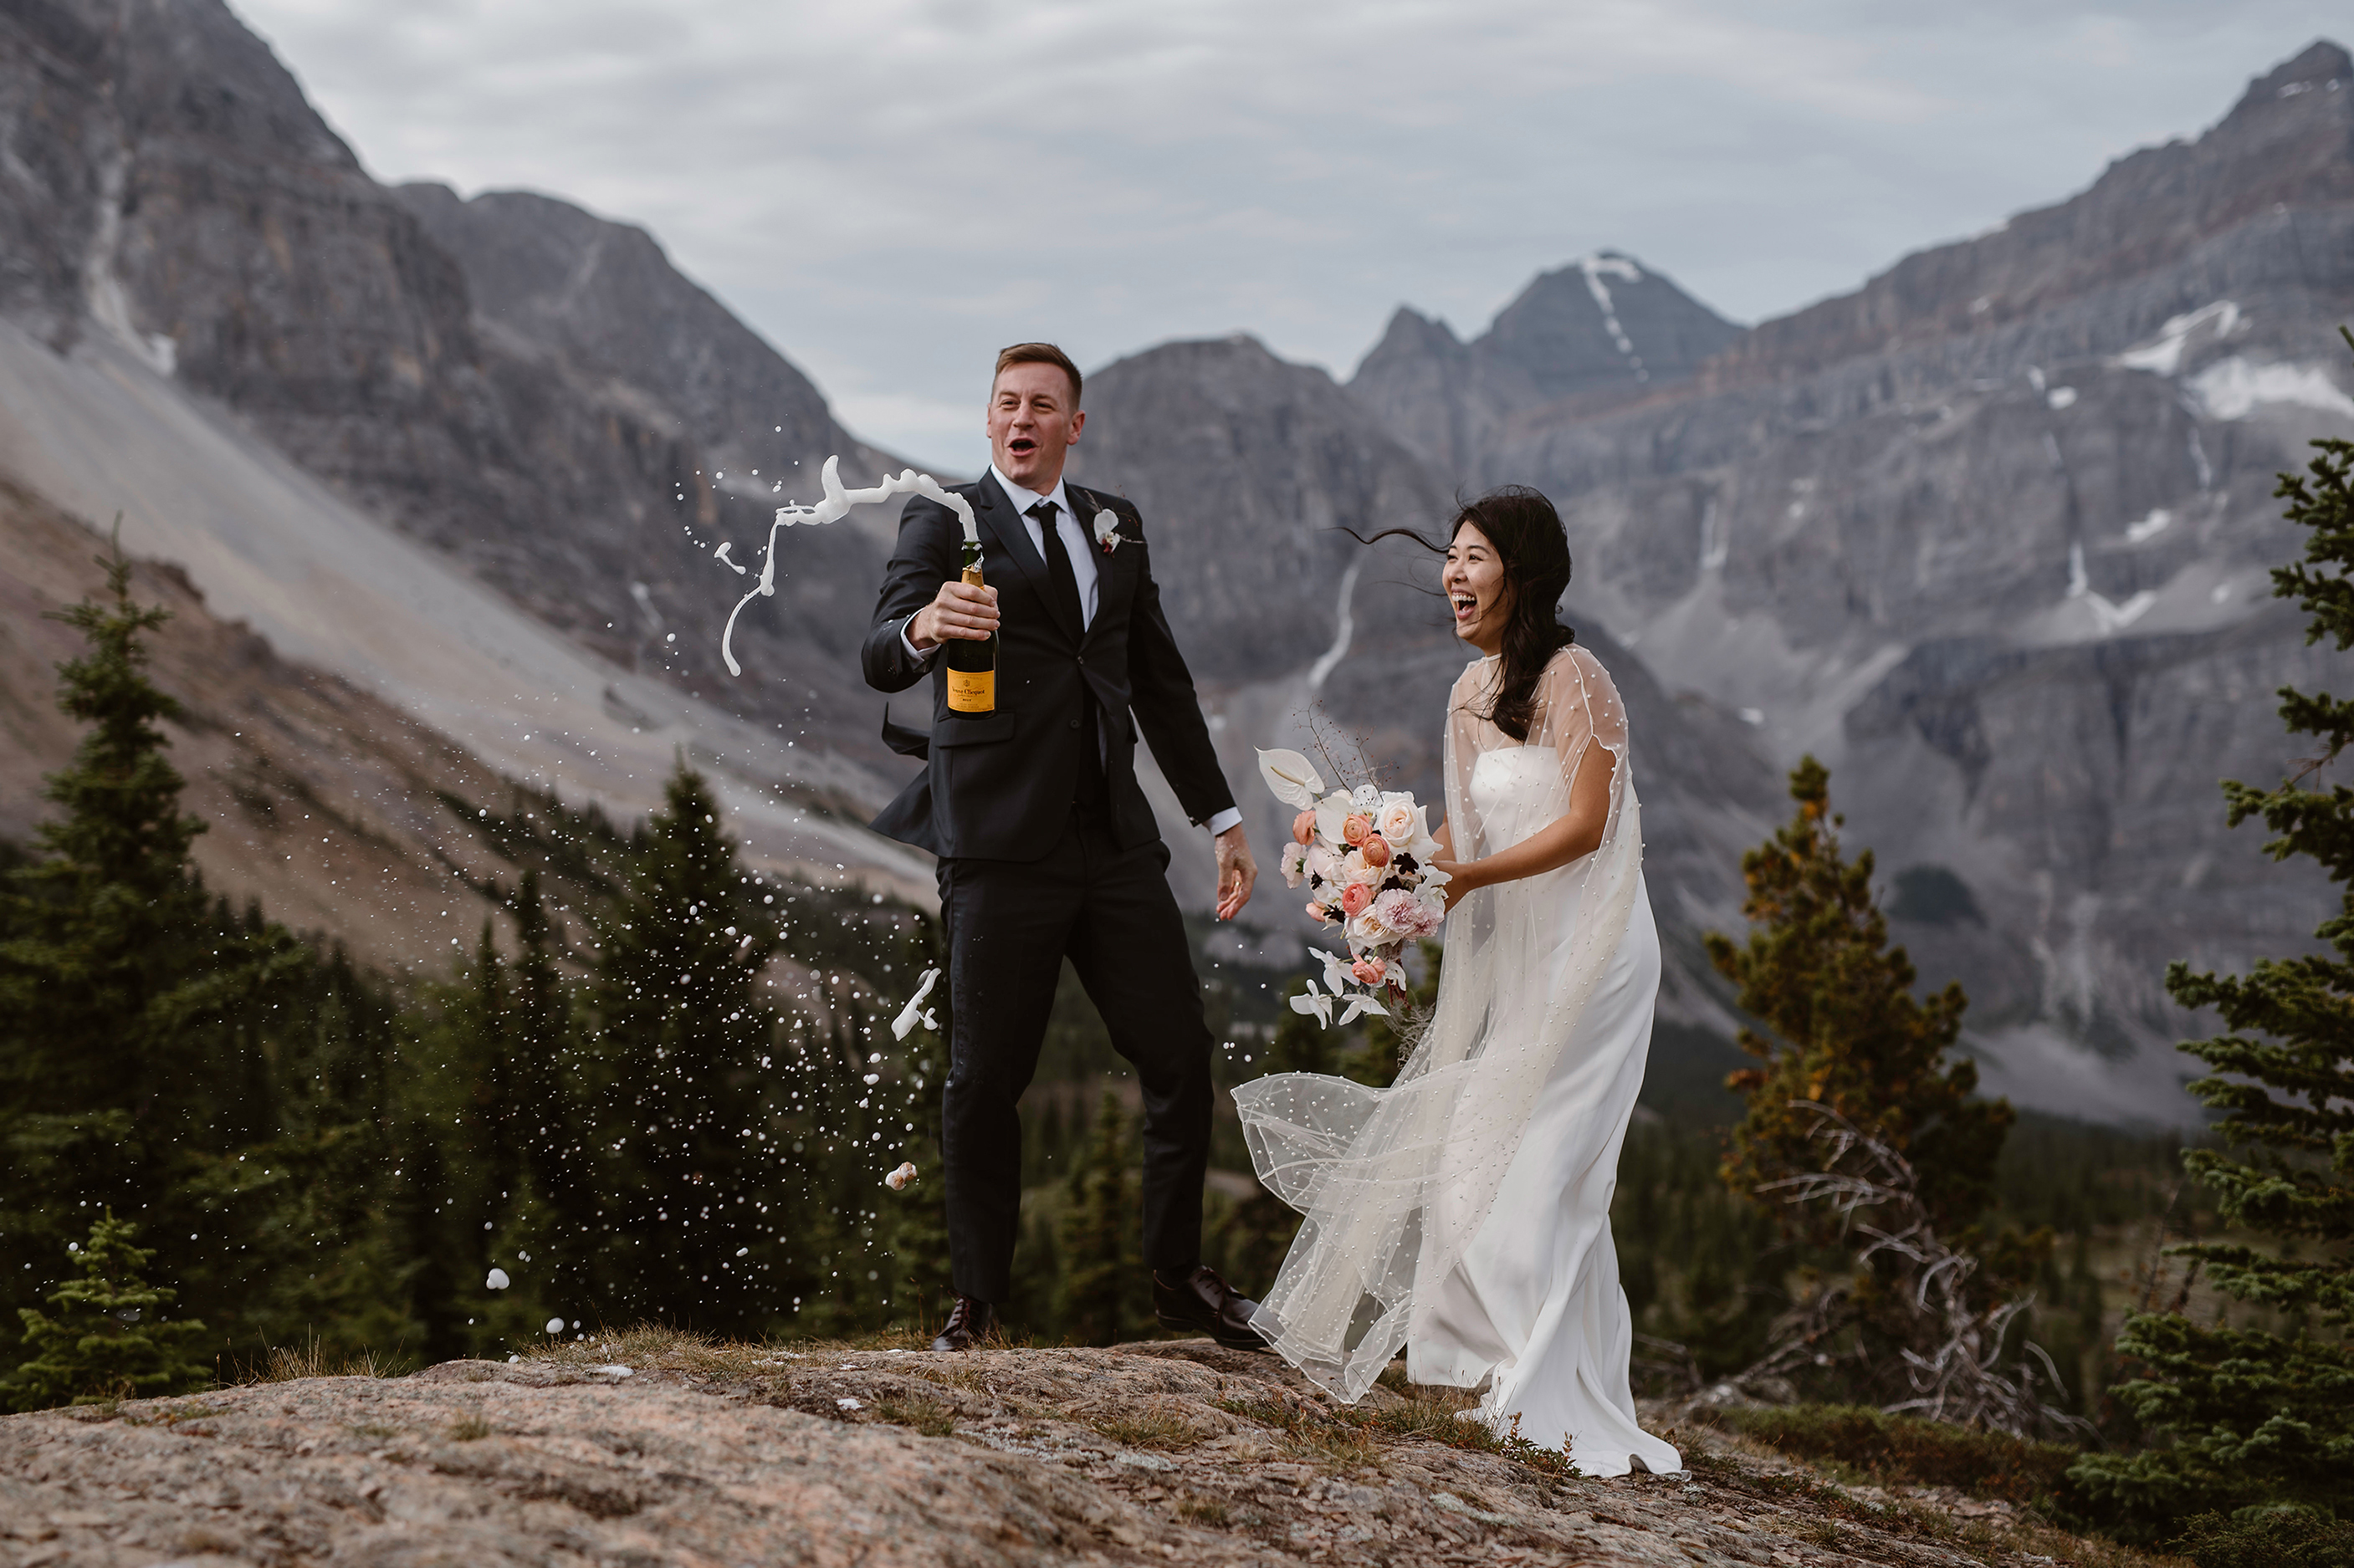 champagne toast after elopement in mountains - photo by Virginia & Evan - Banff